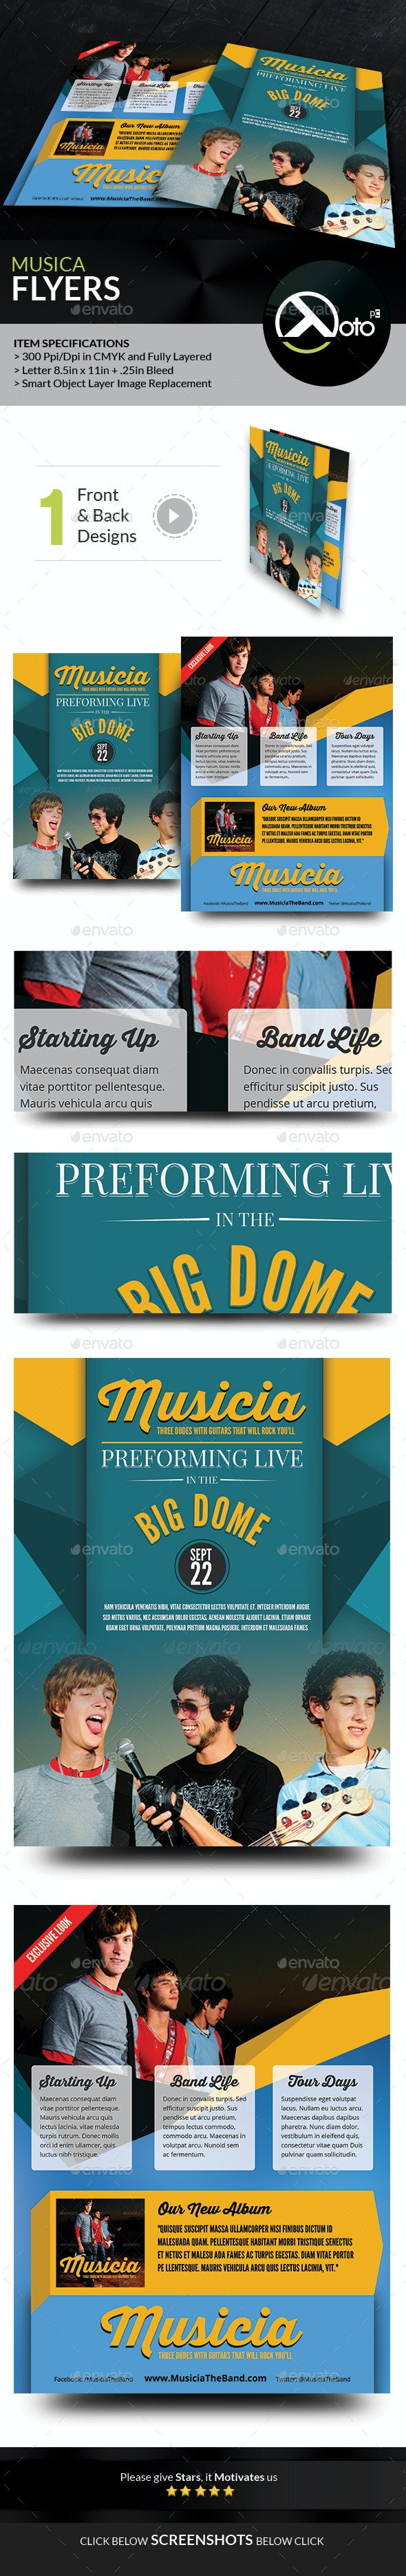 Musica Artist Profile Flyers - Events Flyers